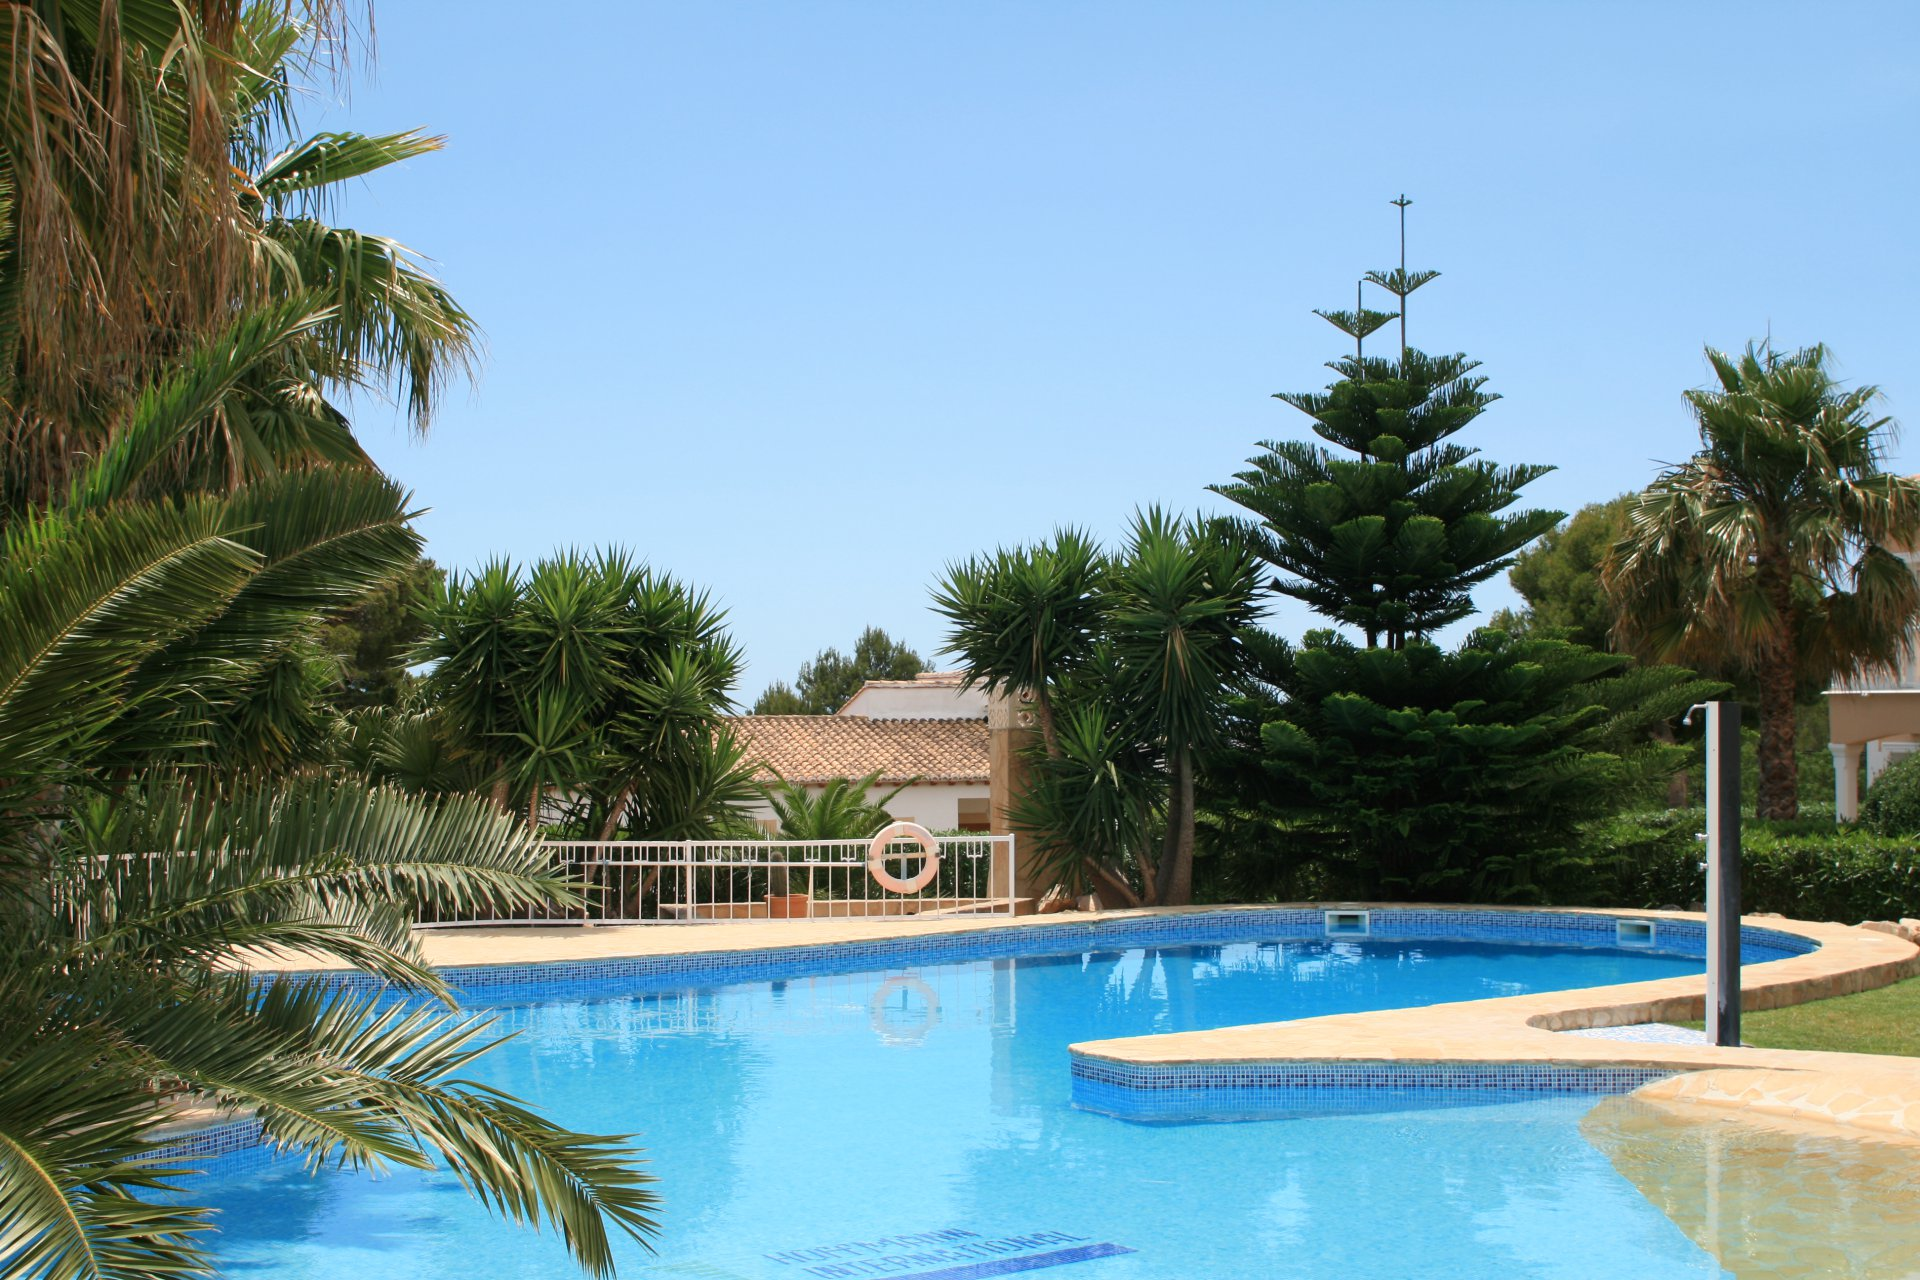 2-bedroom bungalow Residencial BelAir in Calpe